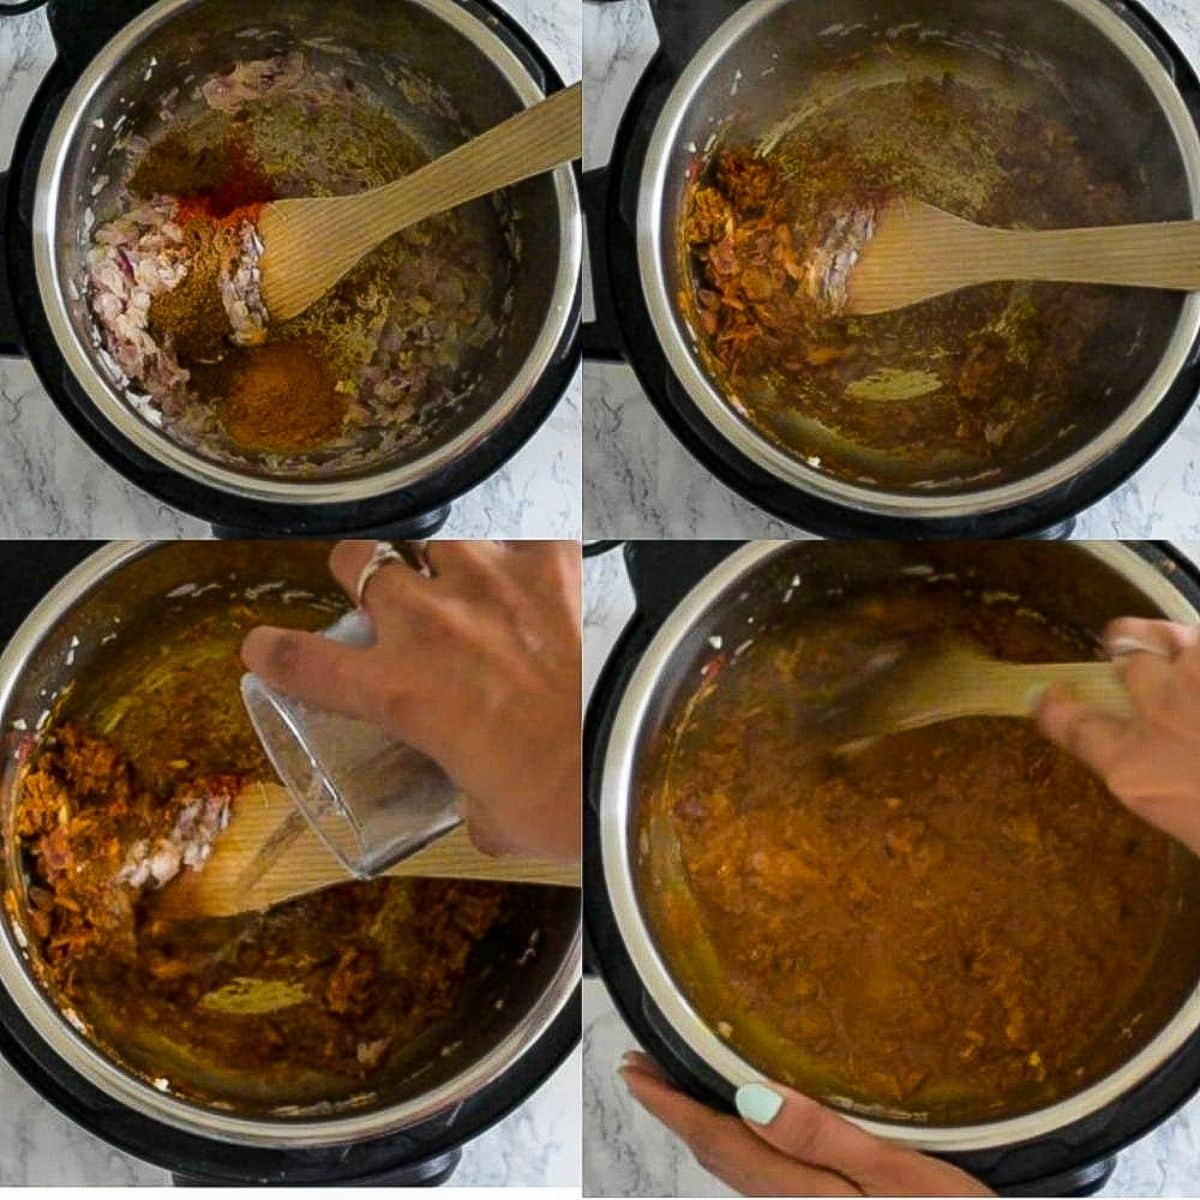 Adding spices and water to the sauce in the Instant Pot